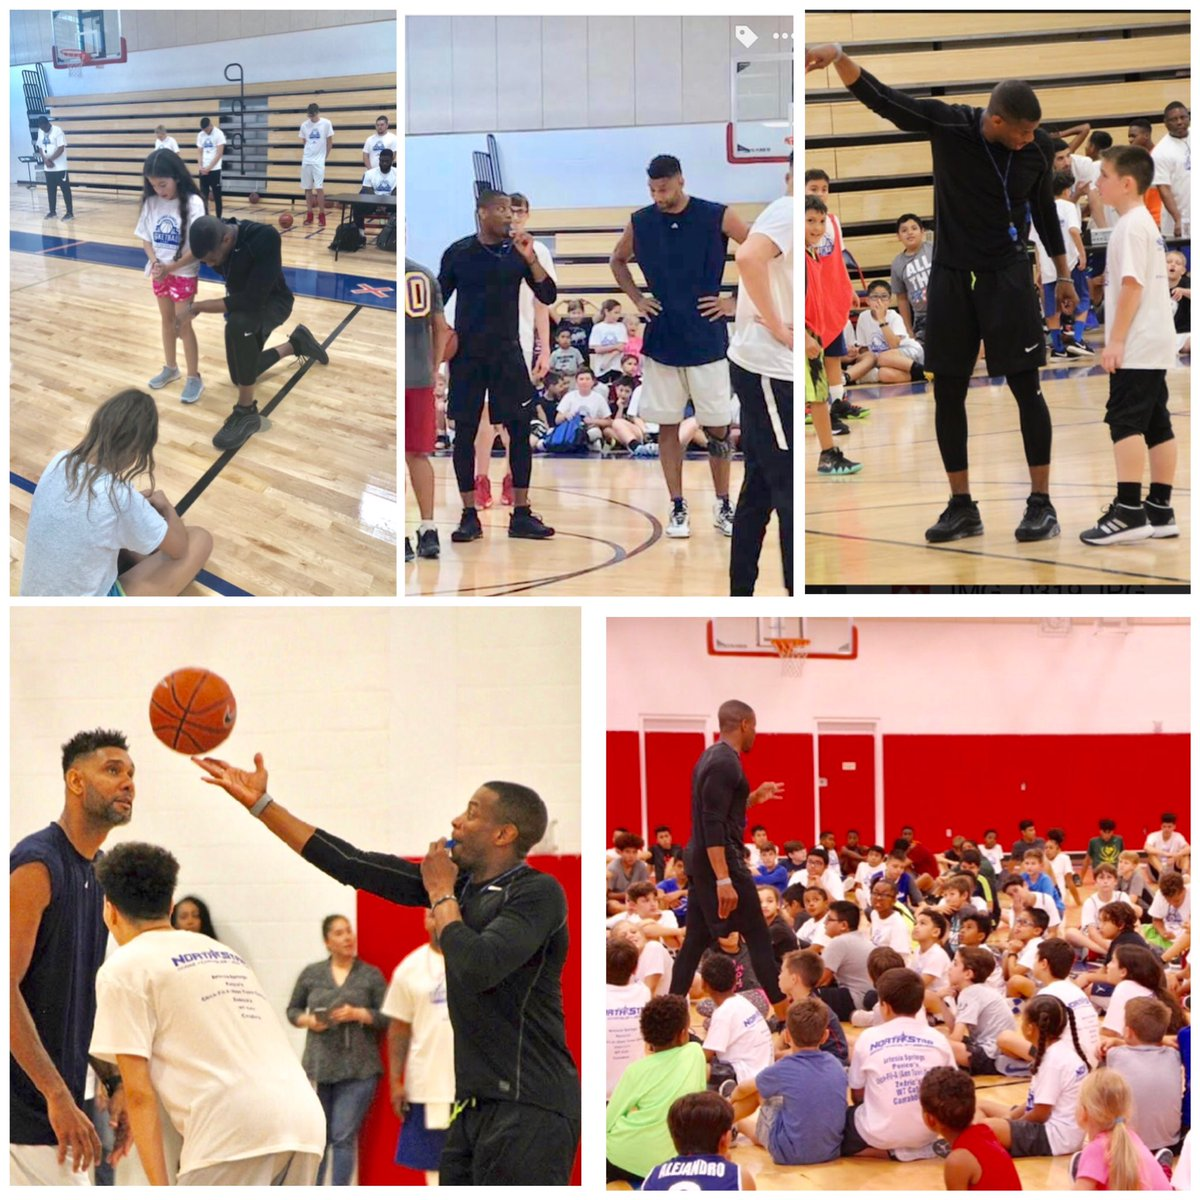 Last years Coaches vs Campers AS game. #CoachesWon😉 You can also register at http://DanielsFamilyFoundation.com  and click on basketball camp.